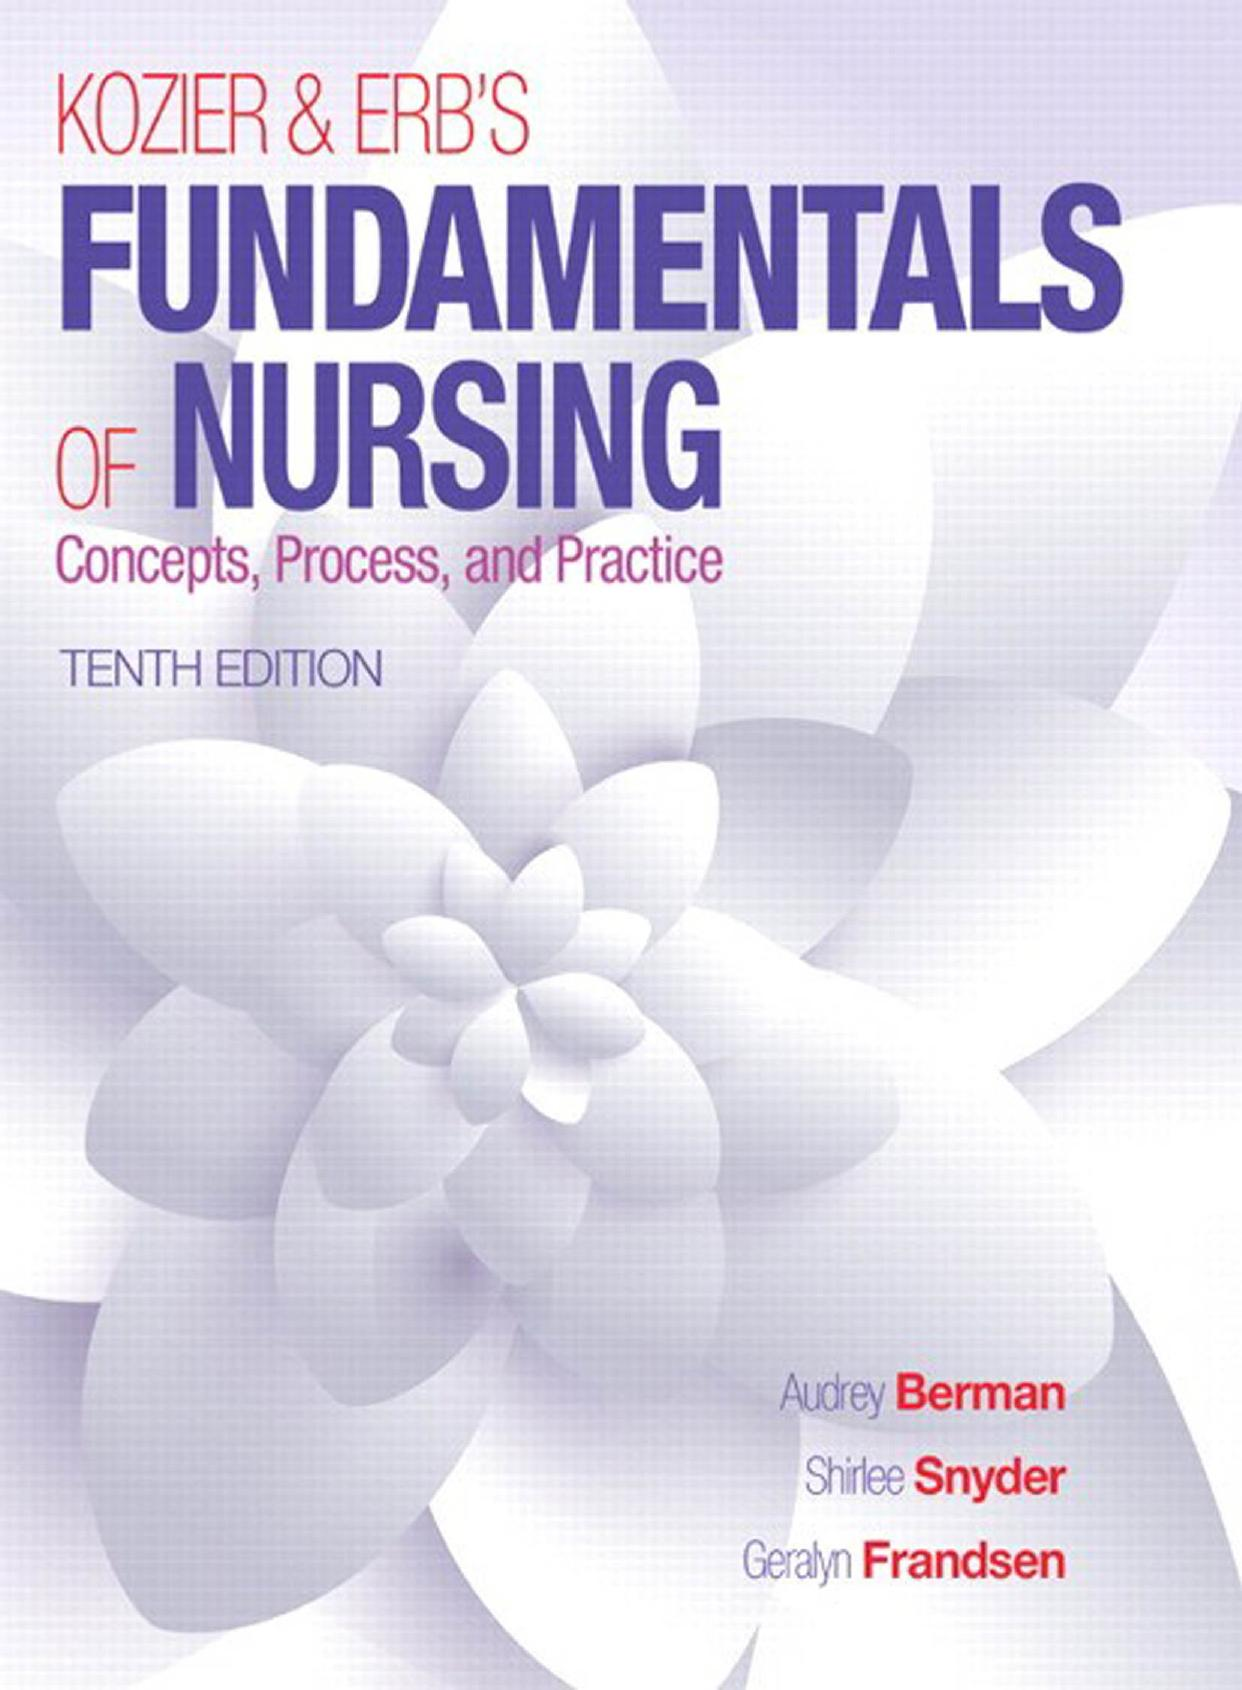 Kozier & Erb's Fundamentals of Nursing 10th Edition PDF